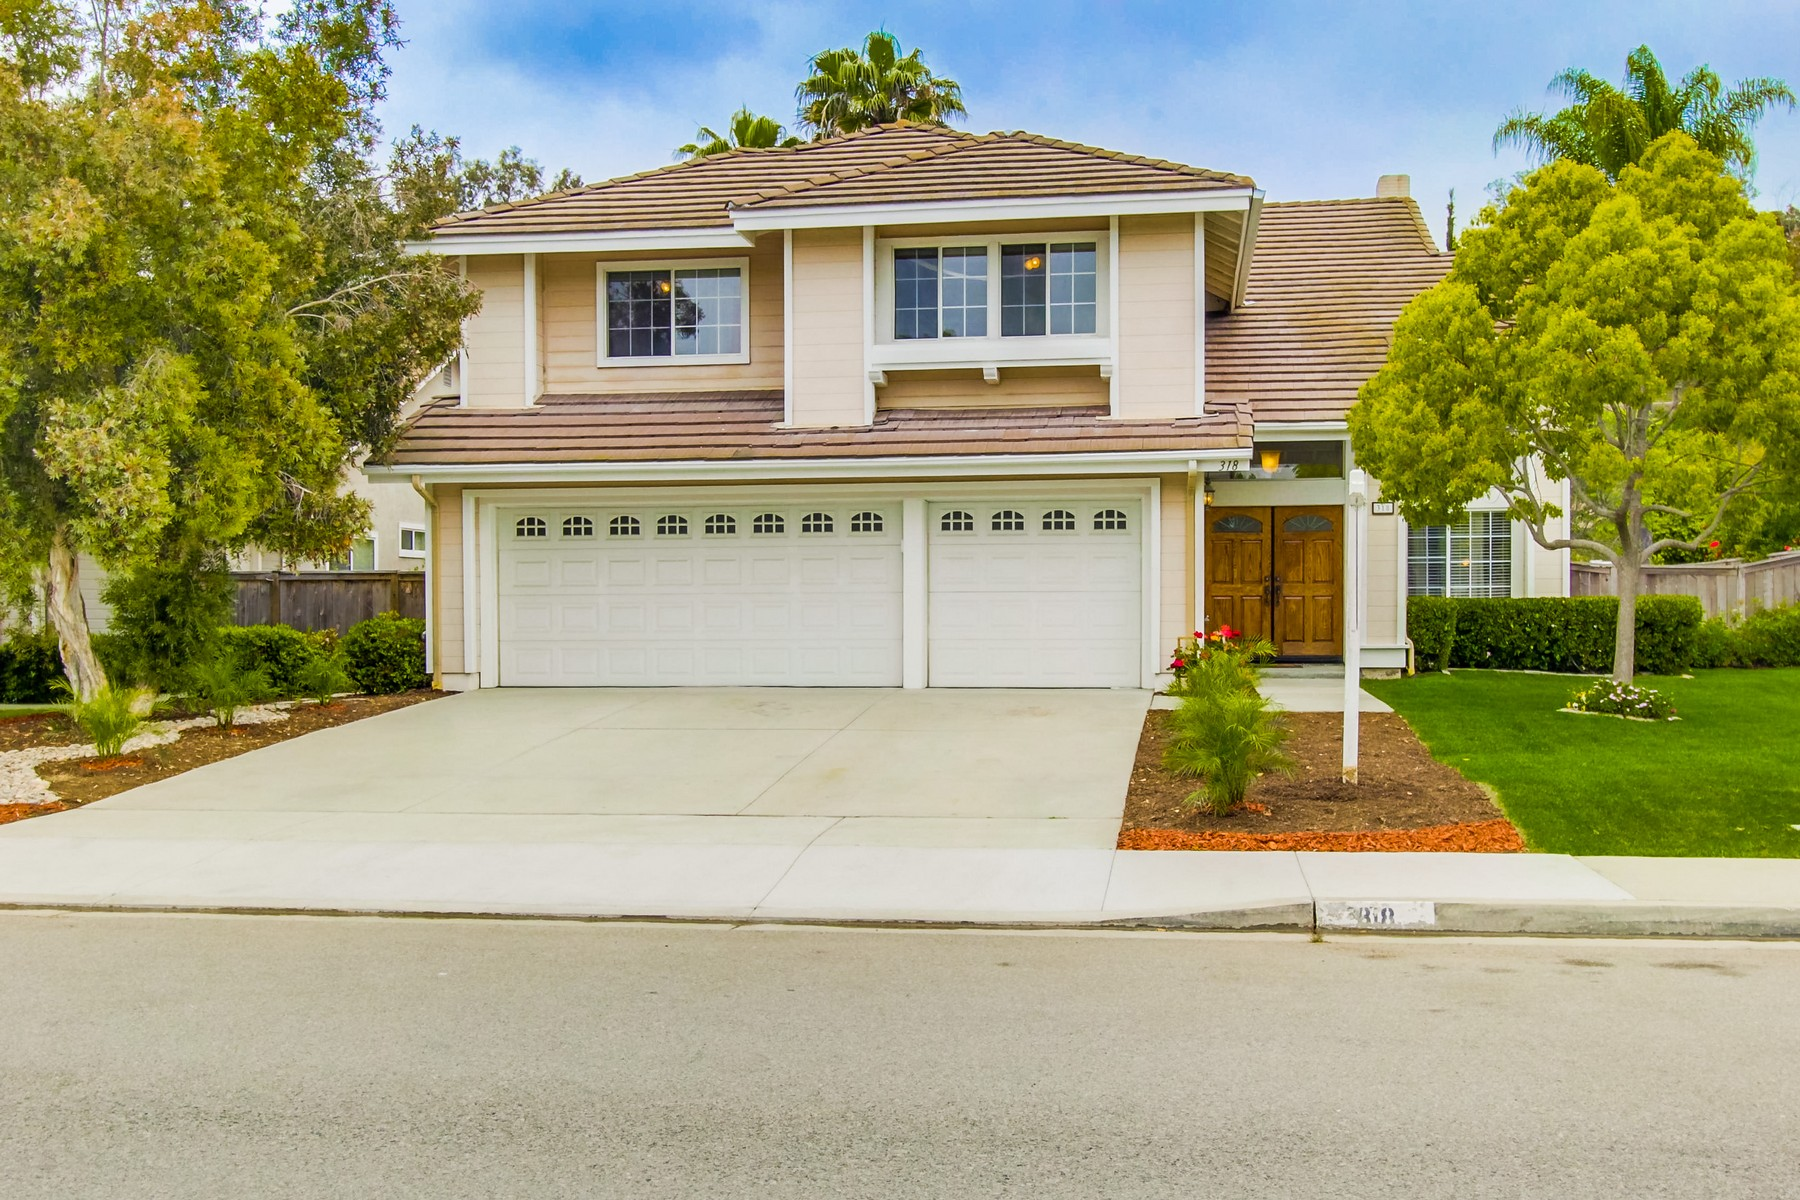 Single Family Home for Sale at 318 Lustrosos Oceanside, California, 92057 United States